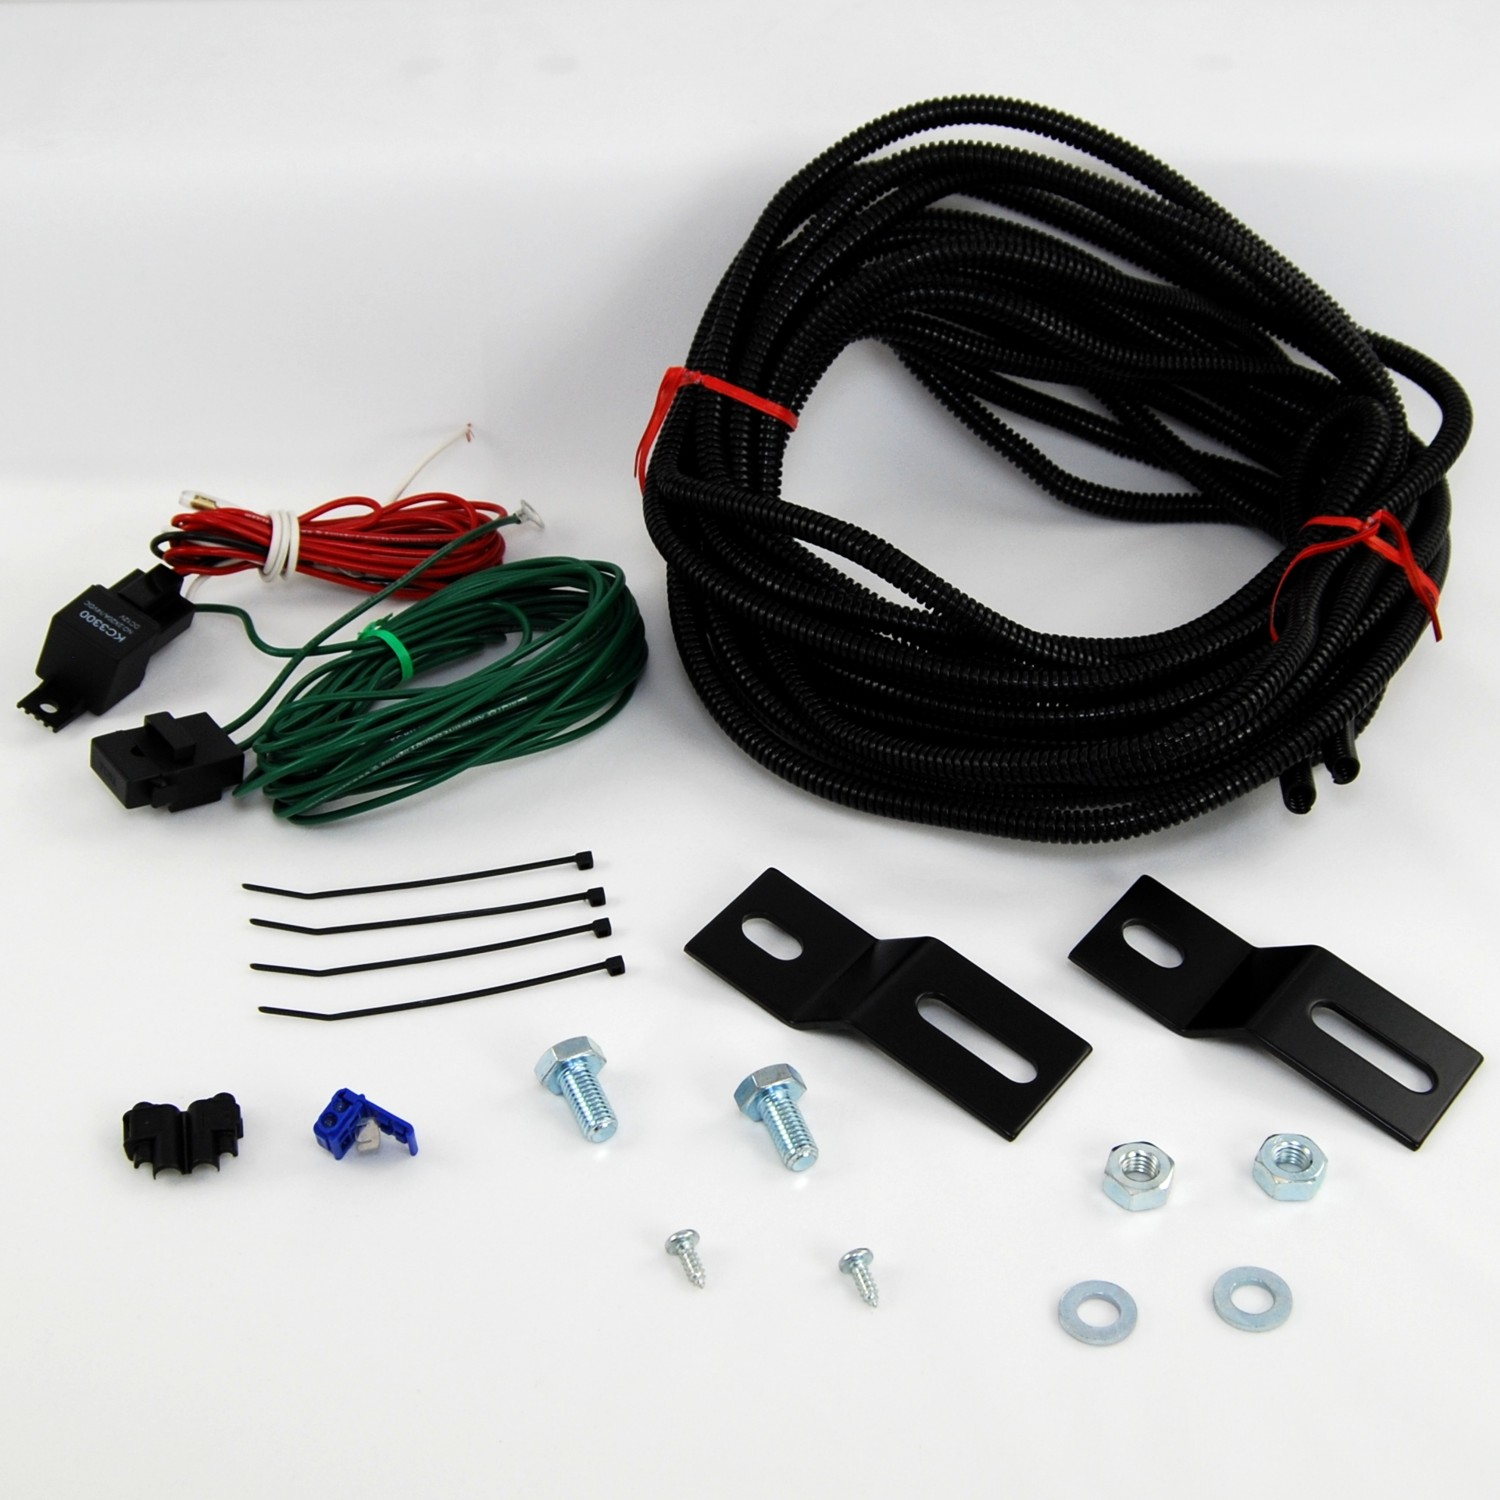 hight resolution of kc hilites 6309 wiring harness for pt 517 kc light kit